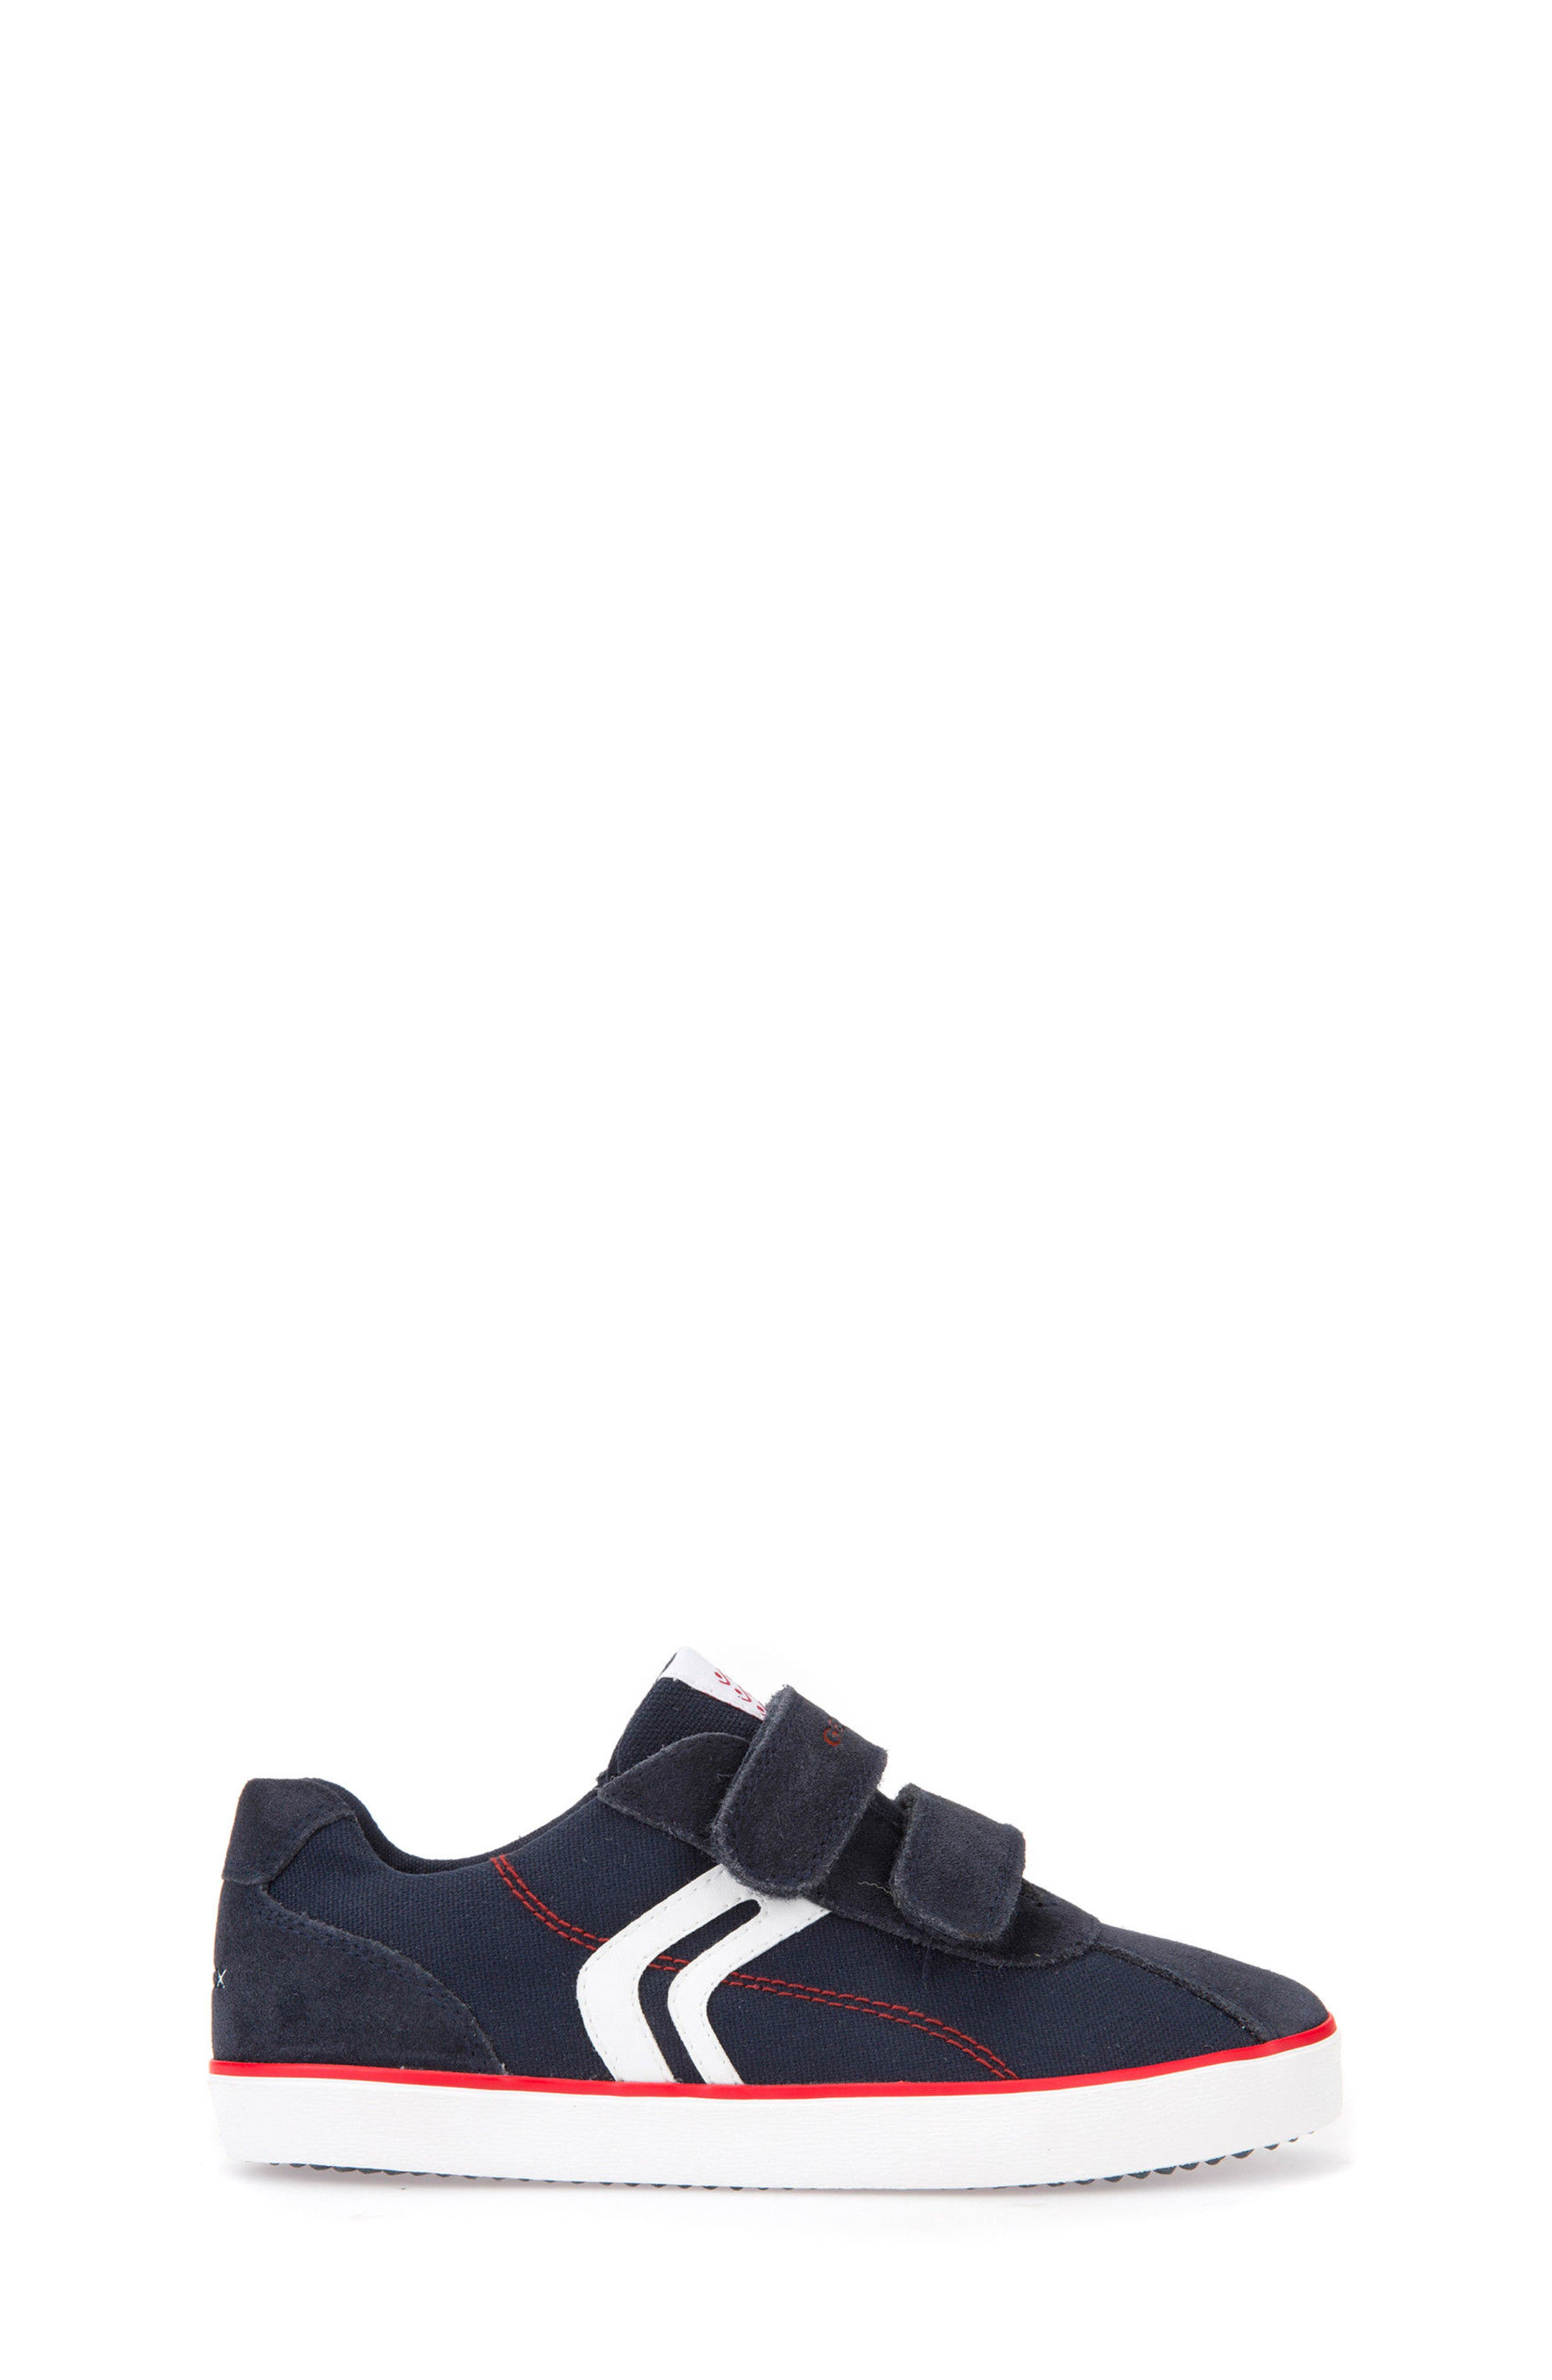 Kilwi Low Top Sneaker,                             Alternate thumbnail 3, color,                             NAVY/ RED